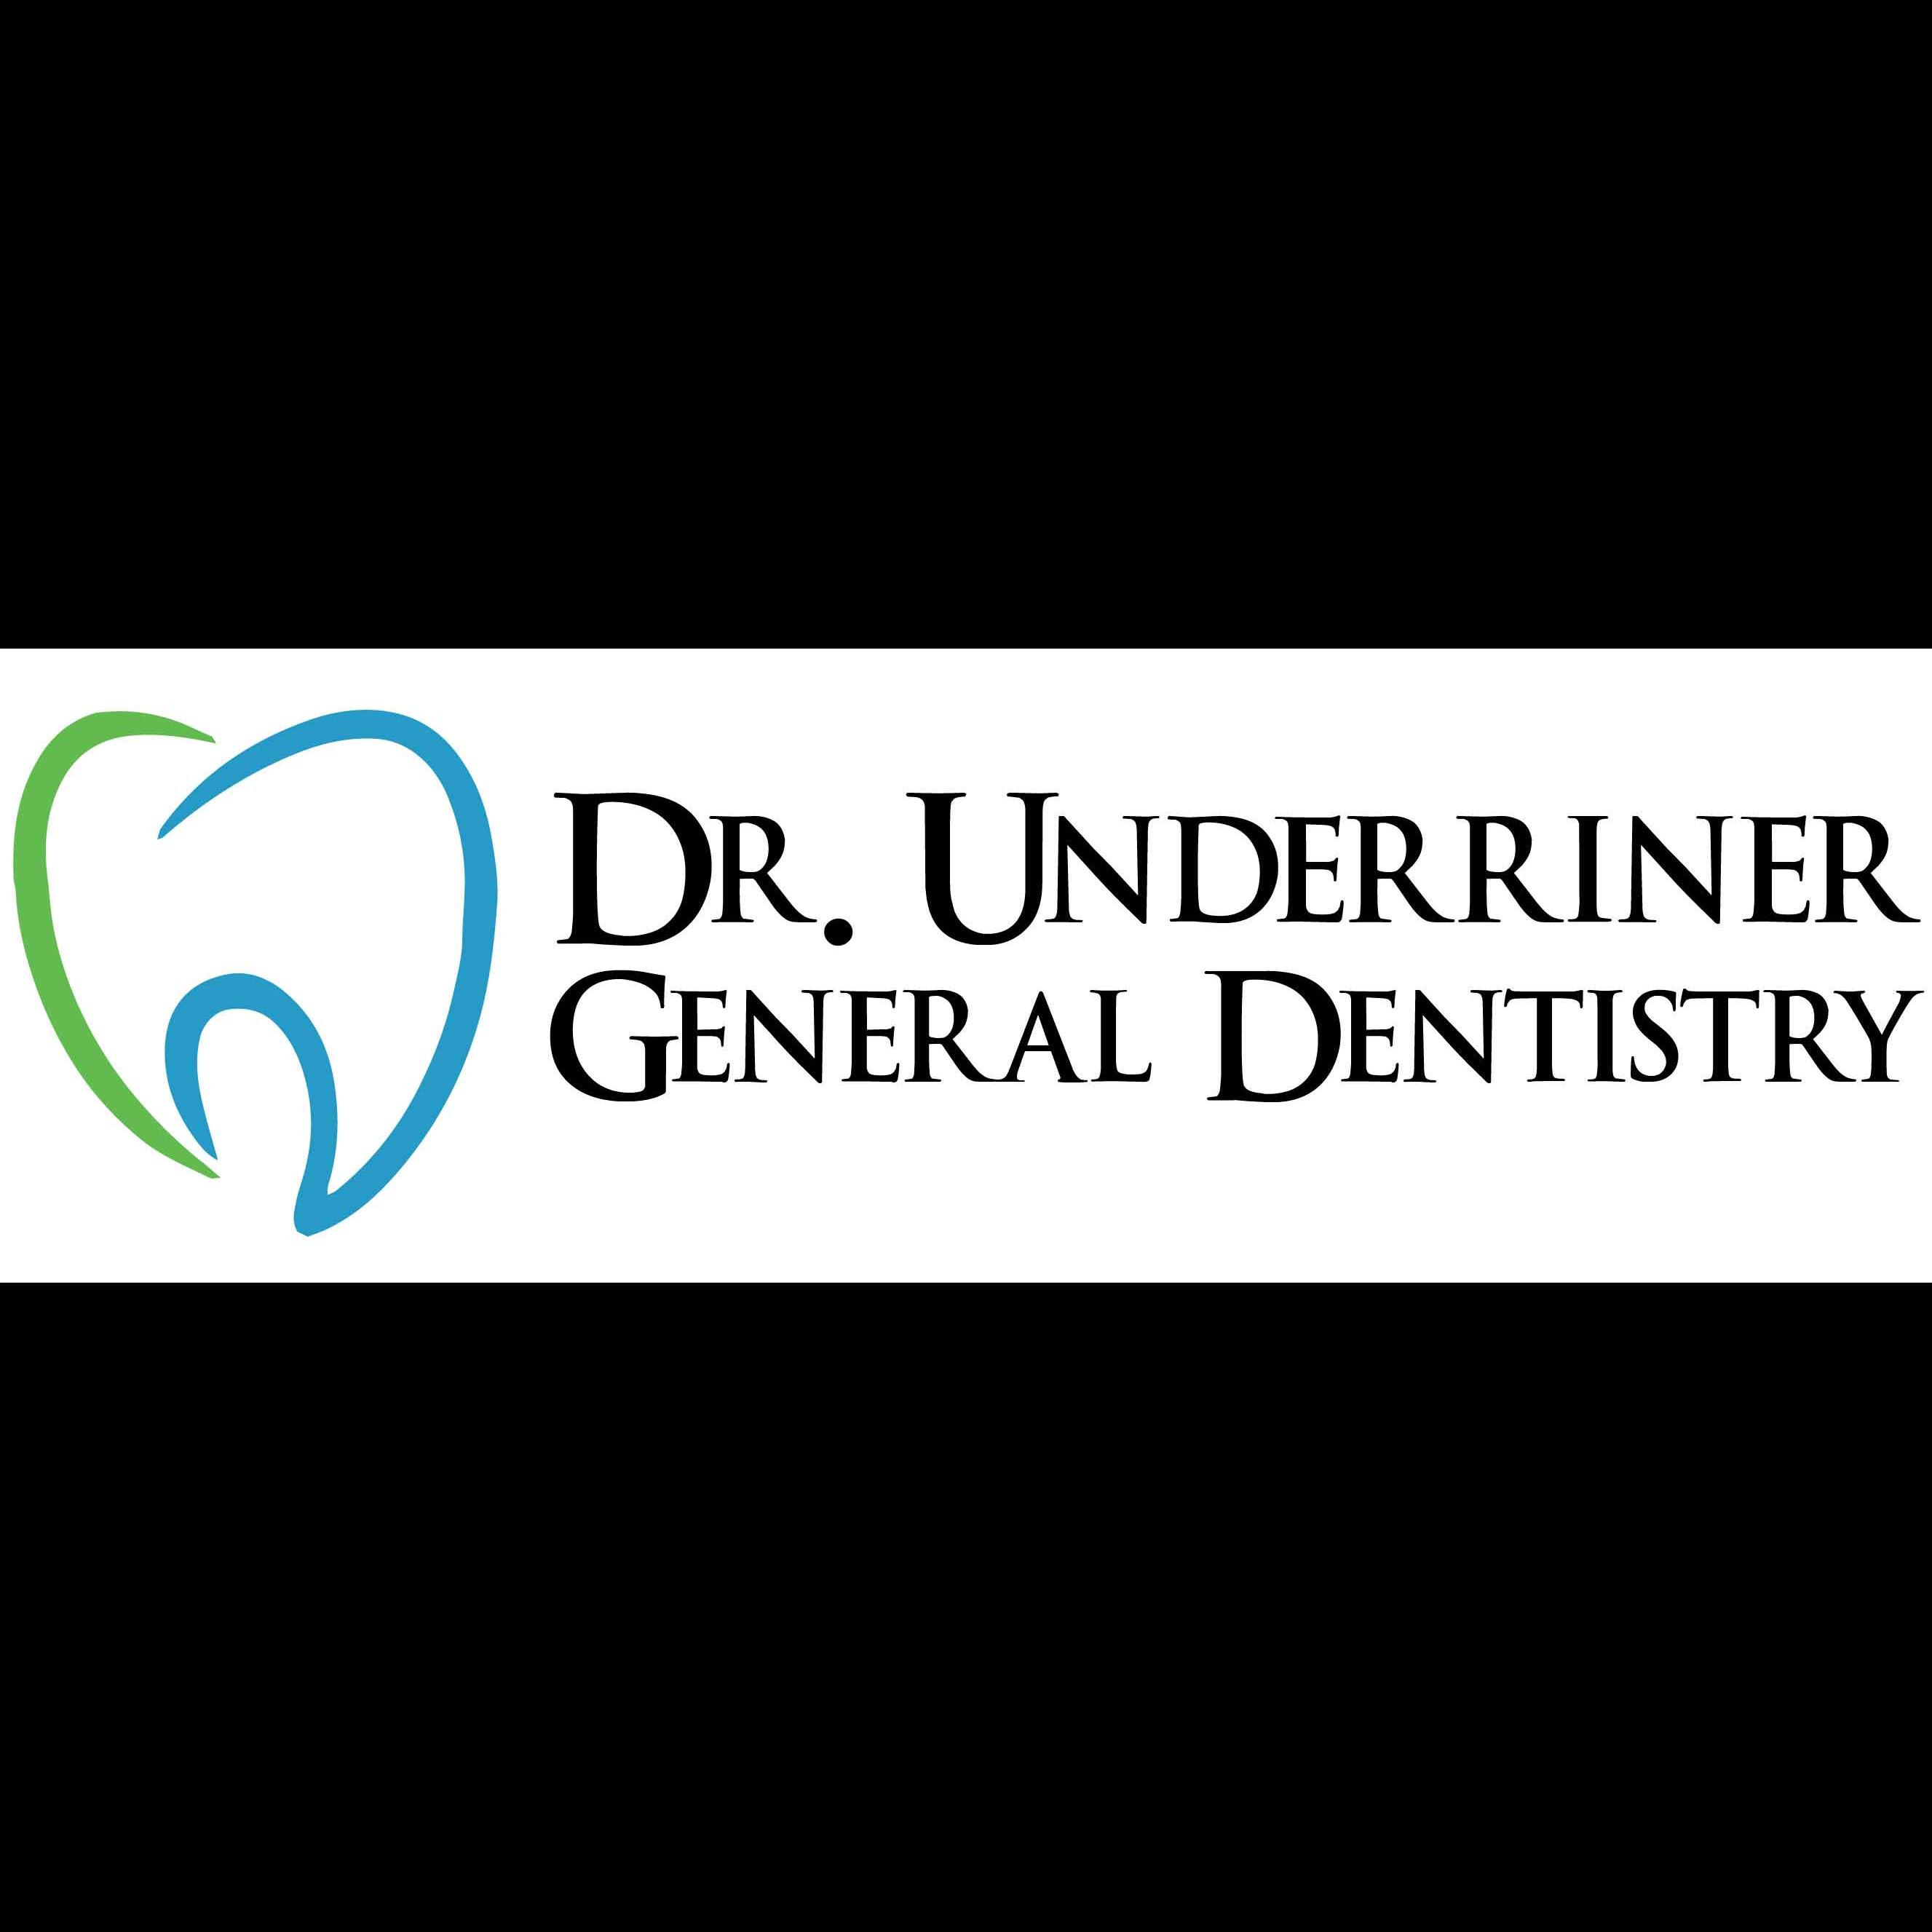 Kenneth Underriner, DDS